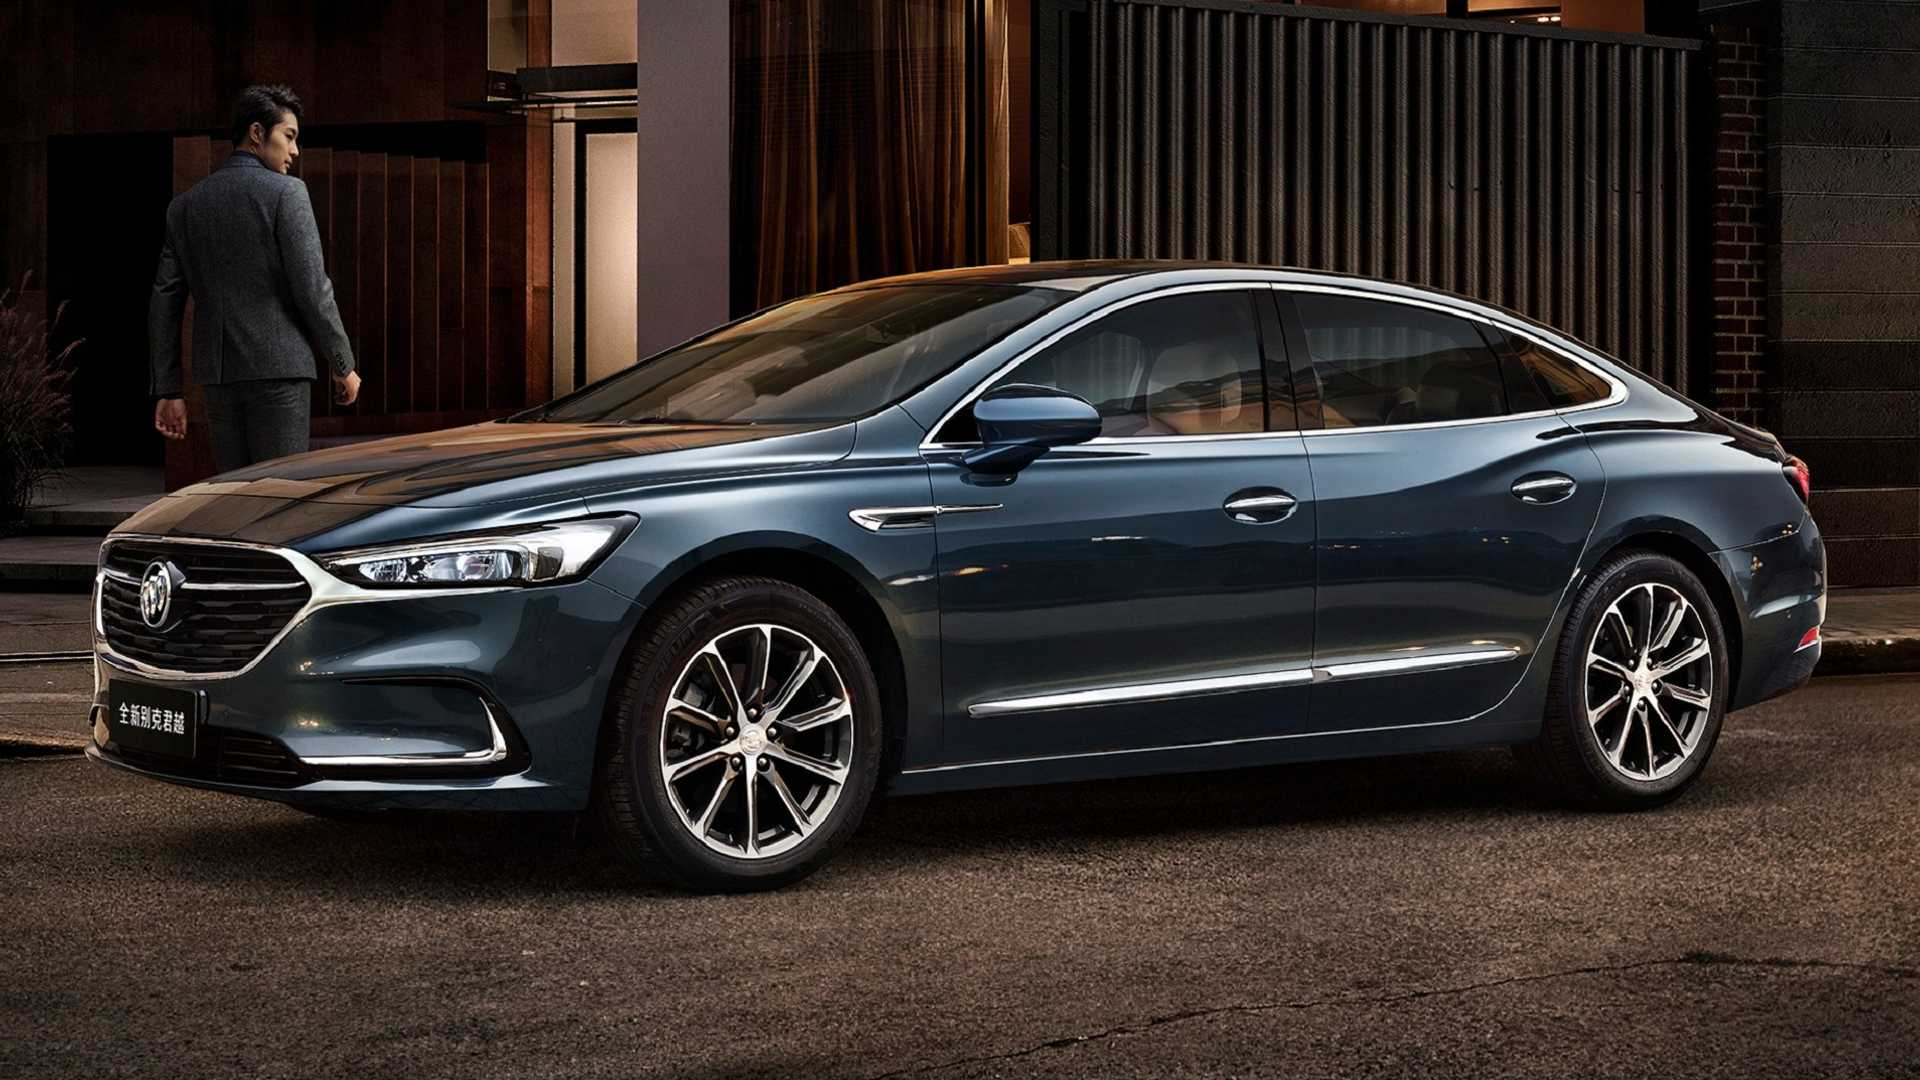 91 The Buick Lacrosse For 2020 Concept